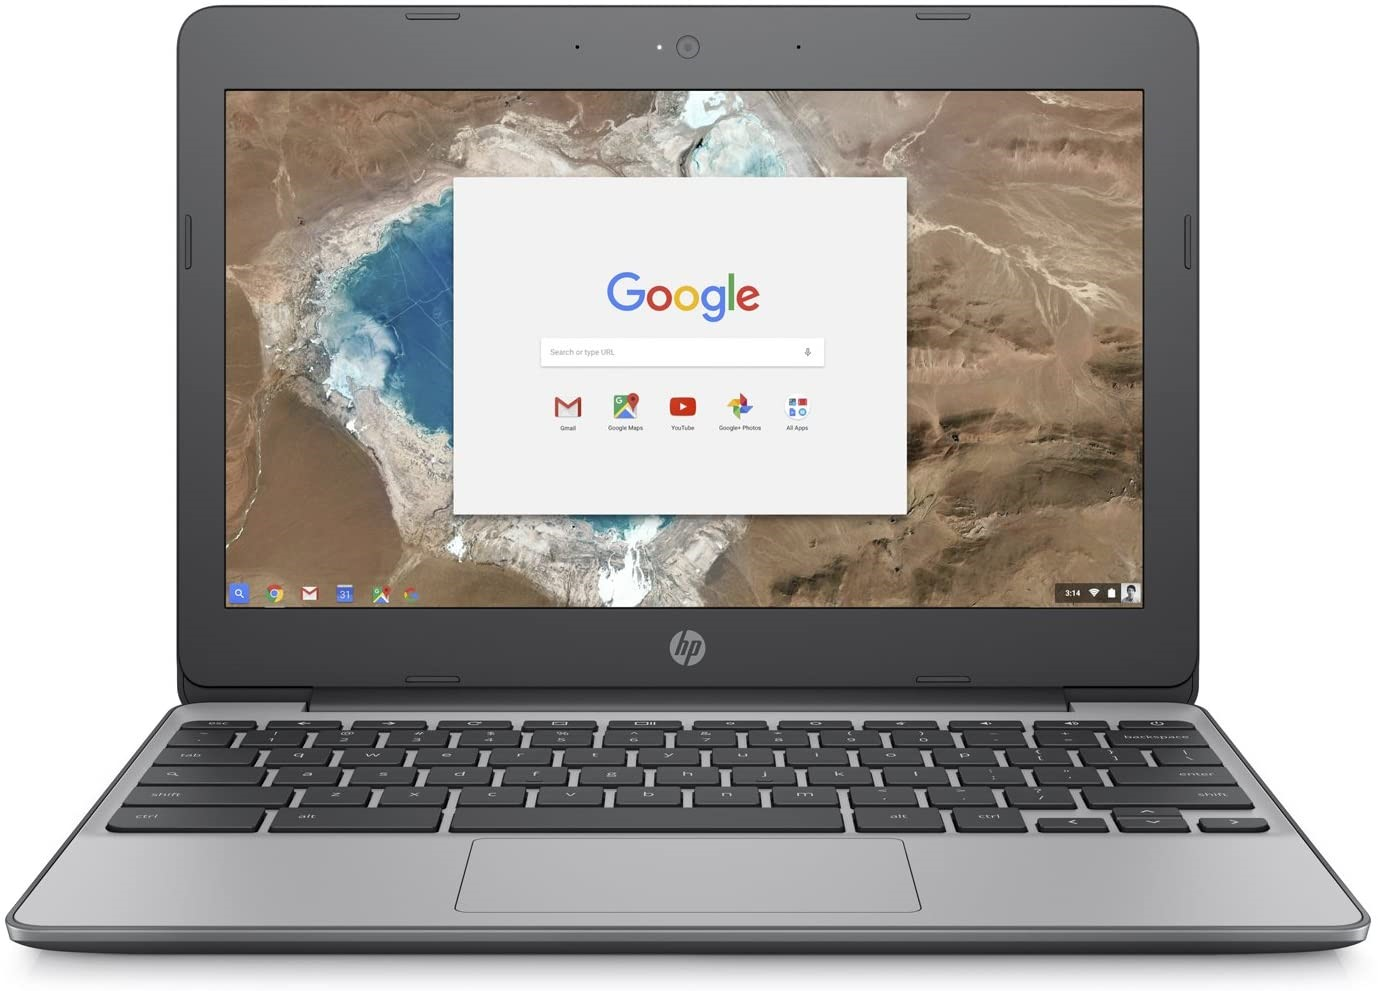 HP Chromebook Emmc with Chrome OS